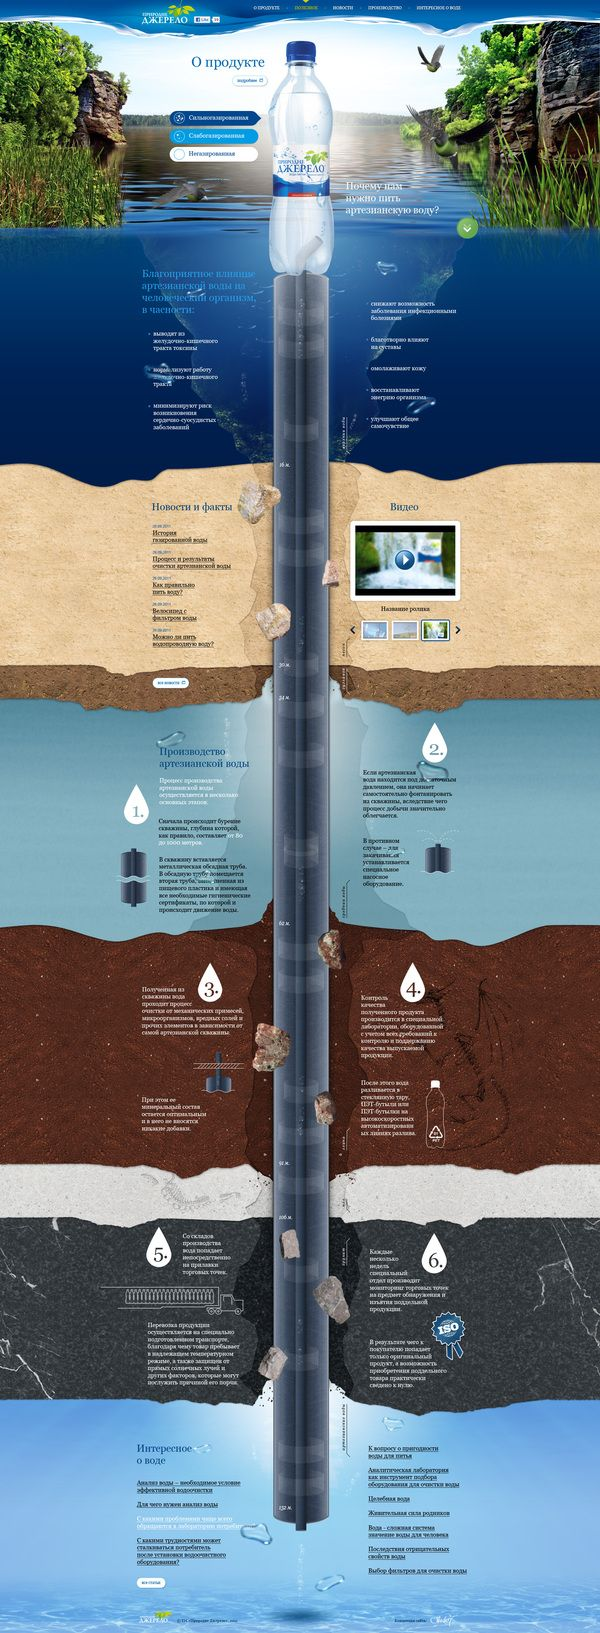 Cool Web Design on the Internet. Jerelo Natural Water. #webdesign #webdevelopment #website